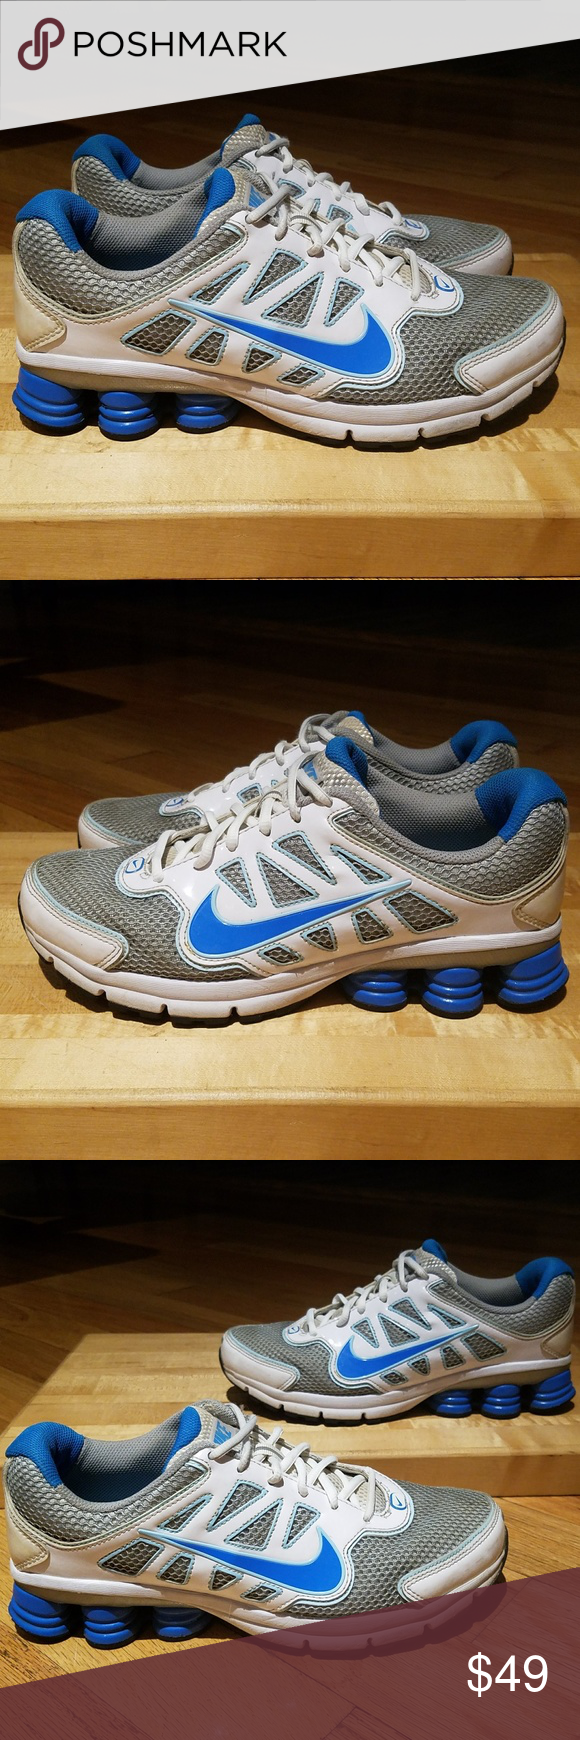 new style 059fe 14e94 ... promo code for nike shox qualify 2 womens running shoes sz 10 b966b  ec5db